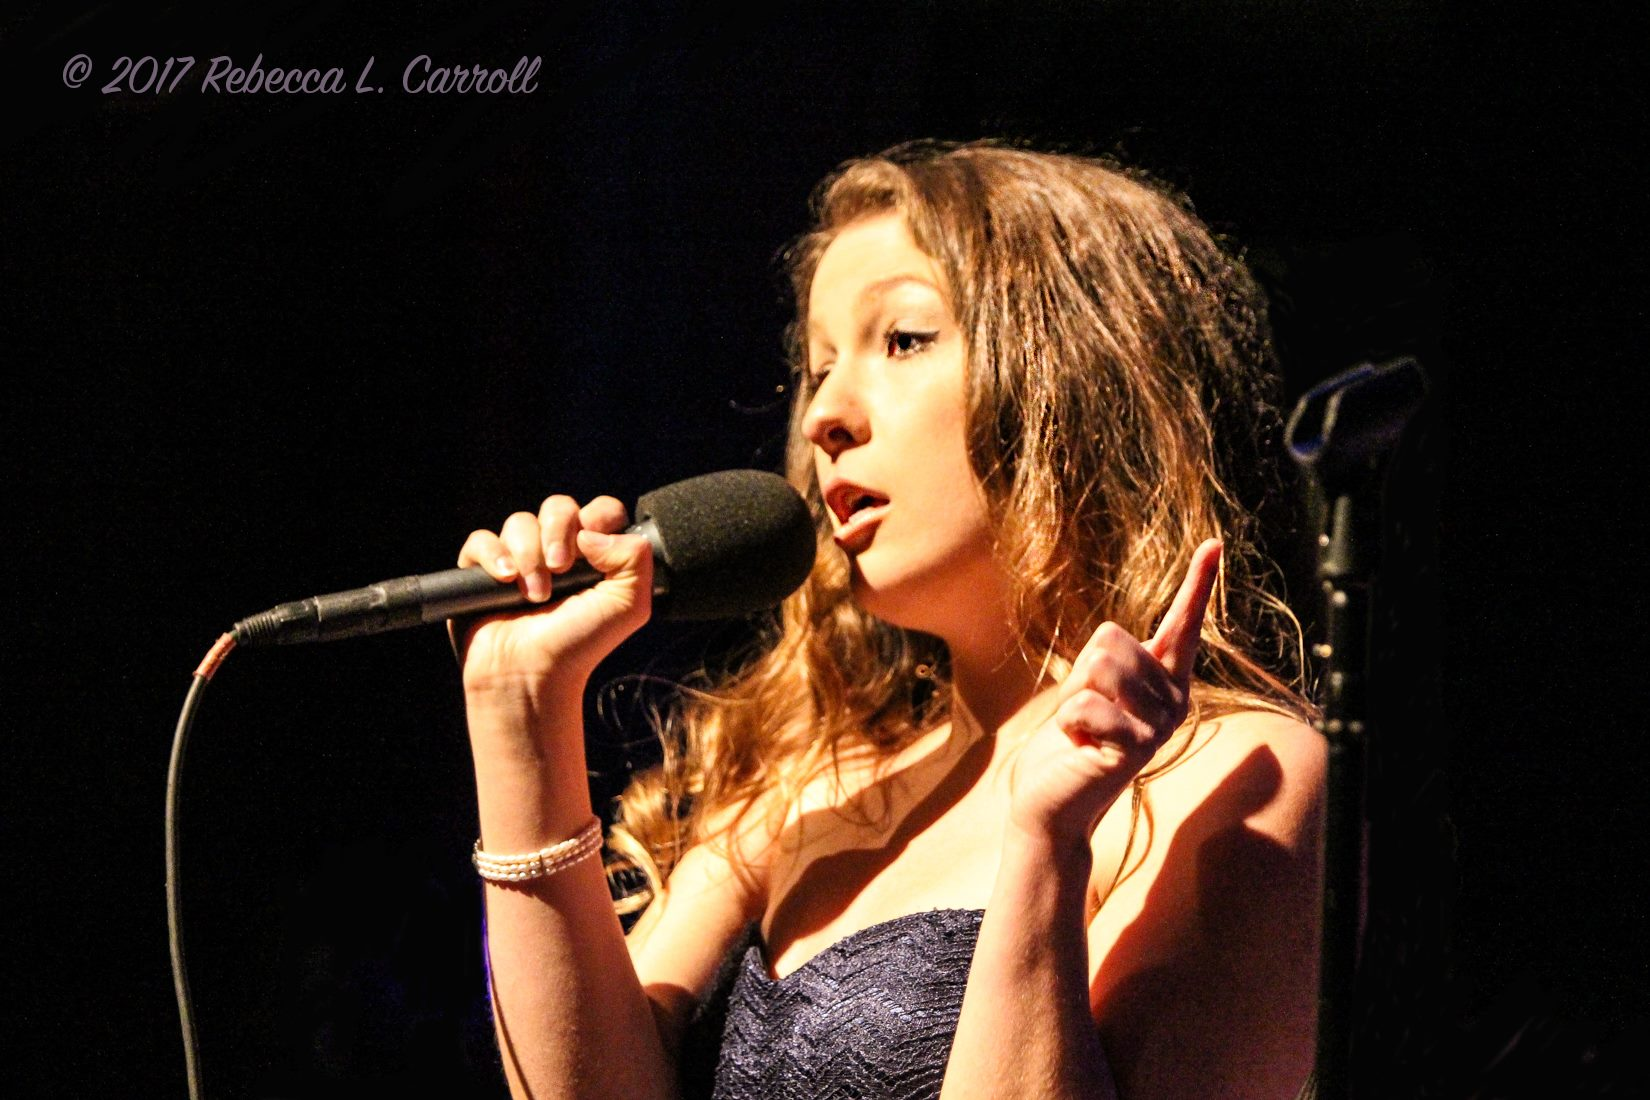 Live at Bethesda Blues and Jazz. Photo by Rebecca Carroll.